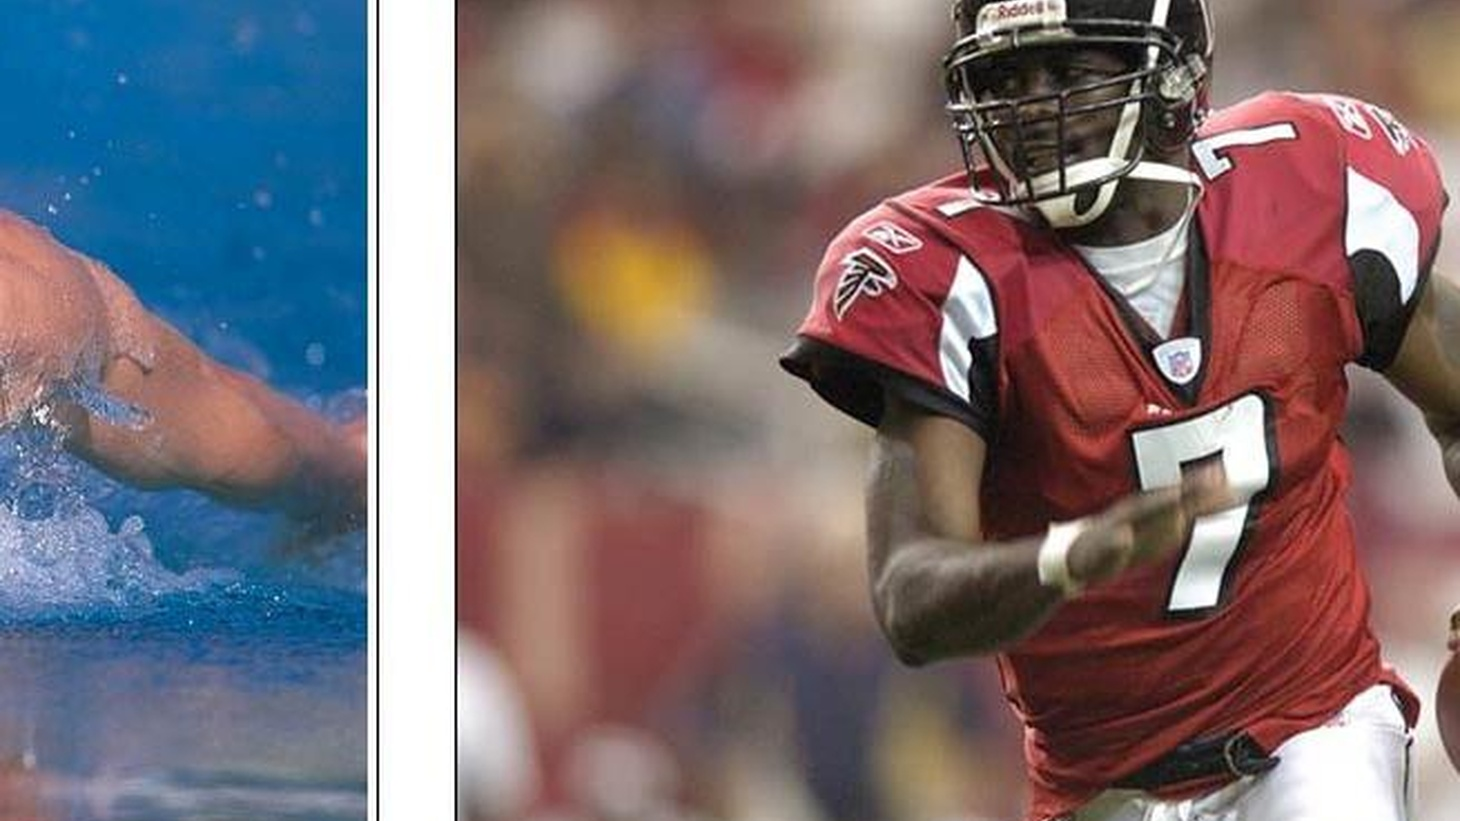 It's been a week now since former football superstar Michael Vick walked out of a federal prison in Leavenworth, Kansas, escorted by agents who ensconced him for the last two months of his 23-month sentence in his home back East. During these two months, Vick will 24-7 wear a tracking device and be allowed to leave the house for only work, medical appointments, and check-ins with his prison officers. The former multi-millionaire is now flat broke and working a 9-to-5 construction job for $10 an hour. The reality of Vick's involvement in a cruel dog-fighting ring has slapped the once franchise quarterback of the Atlanta Falcons hard indeed..